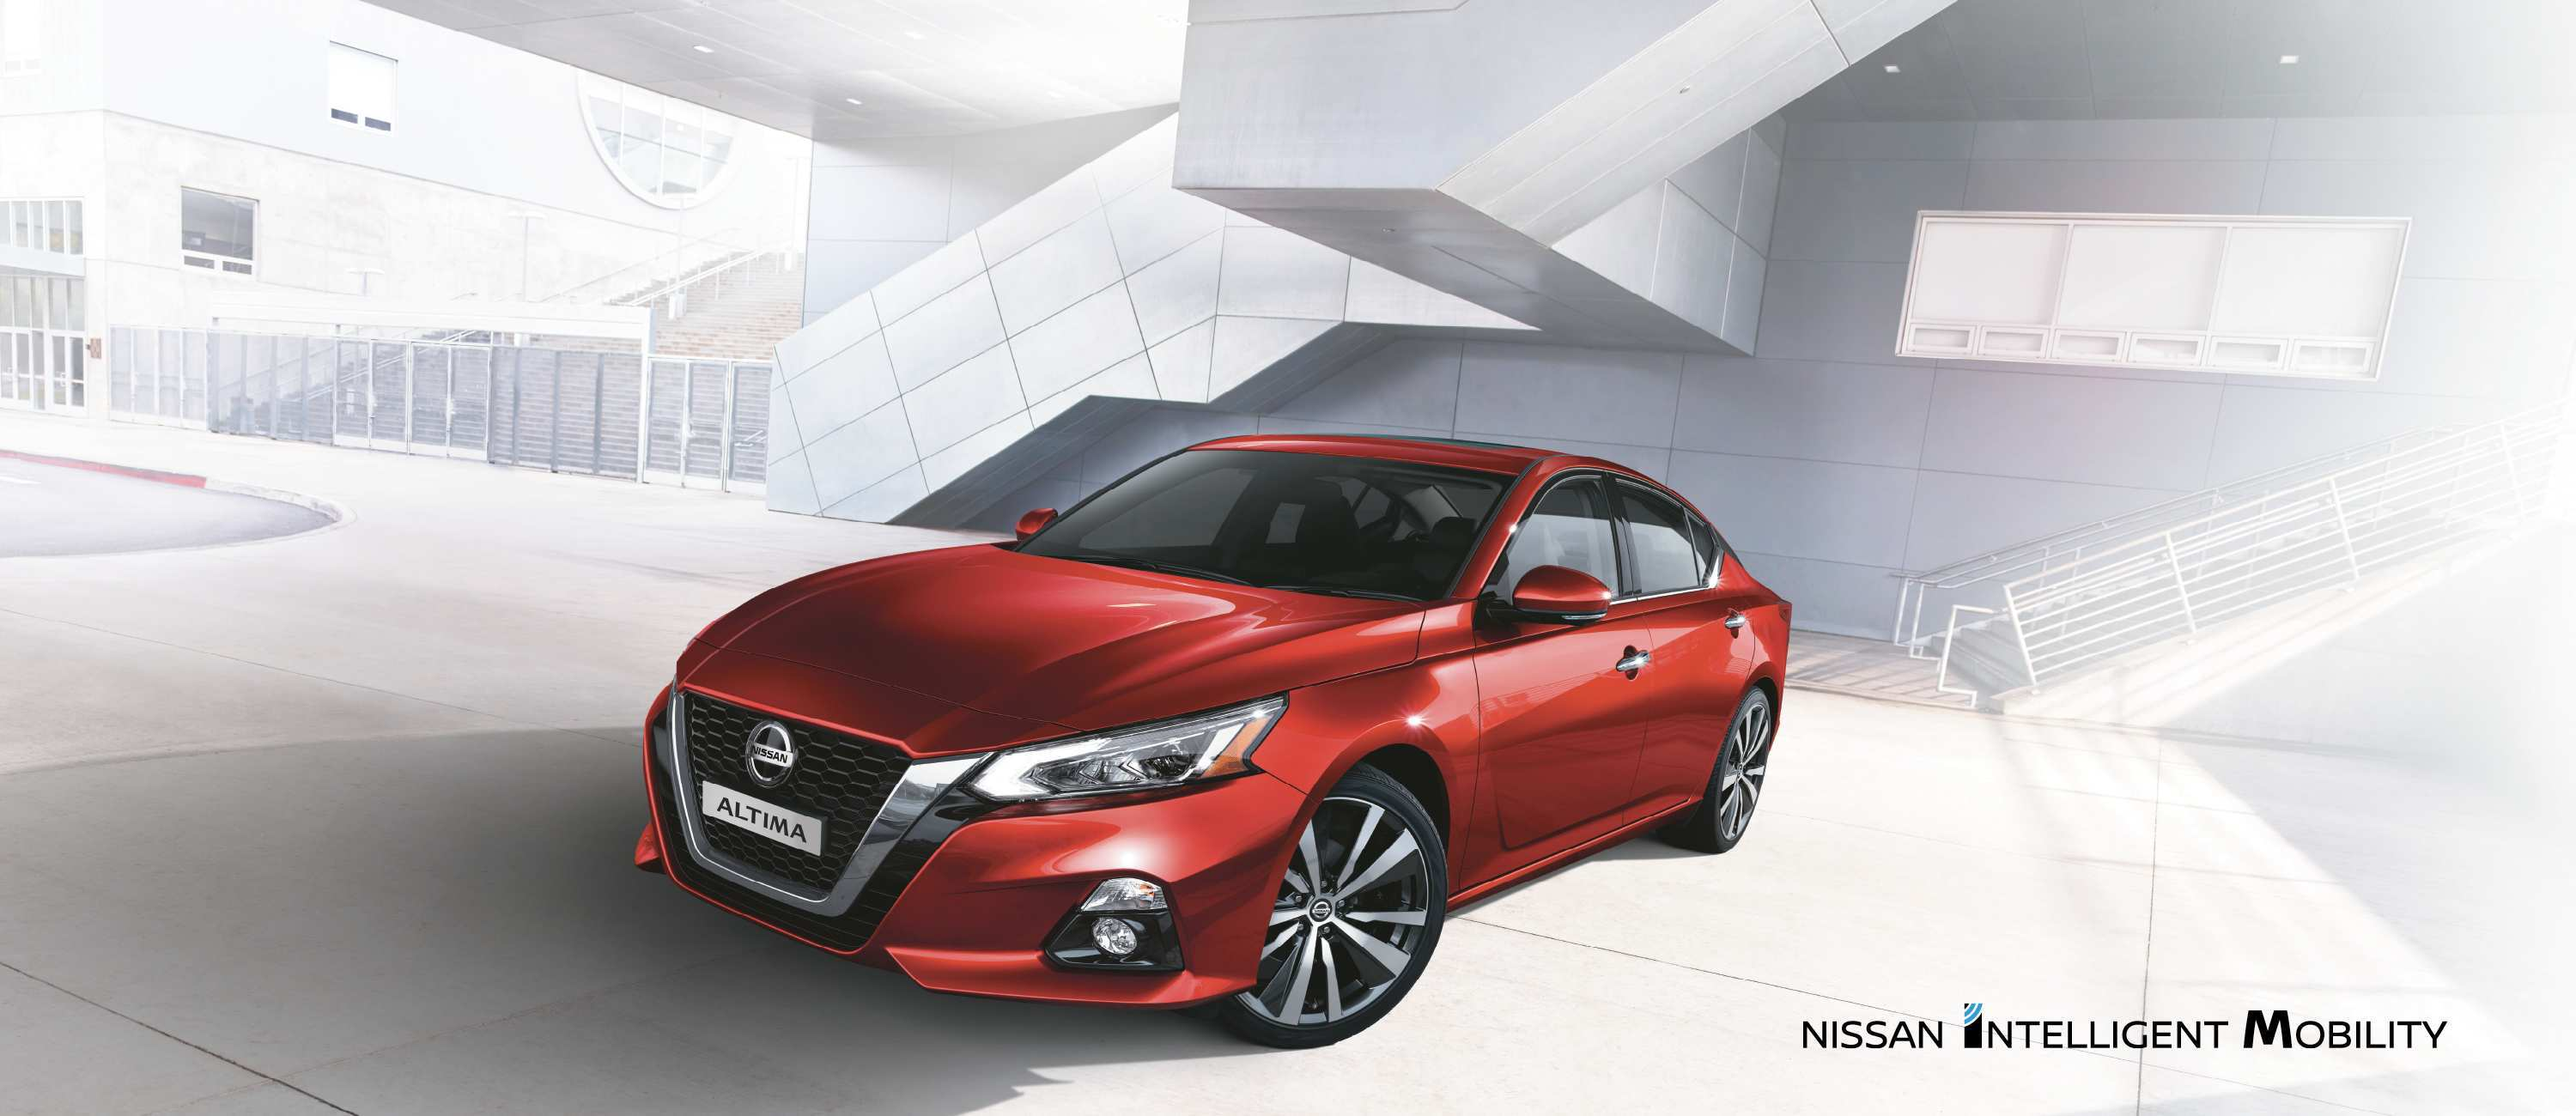 59 The Best 2019 Nissan Vehicles Release Date